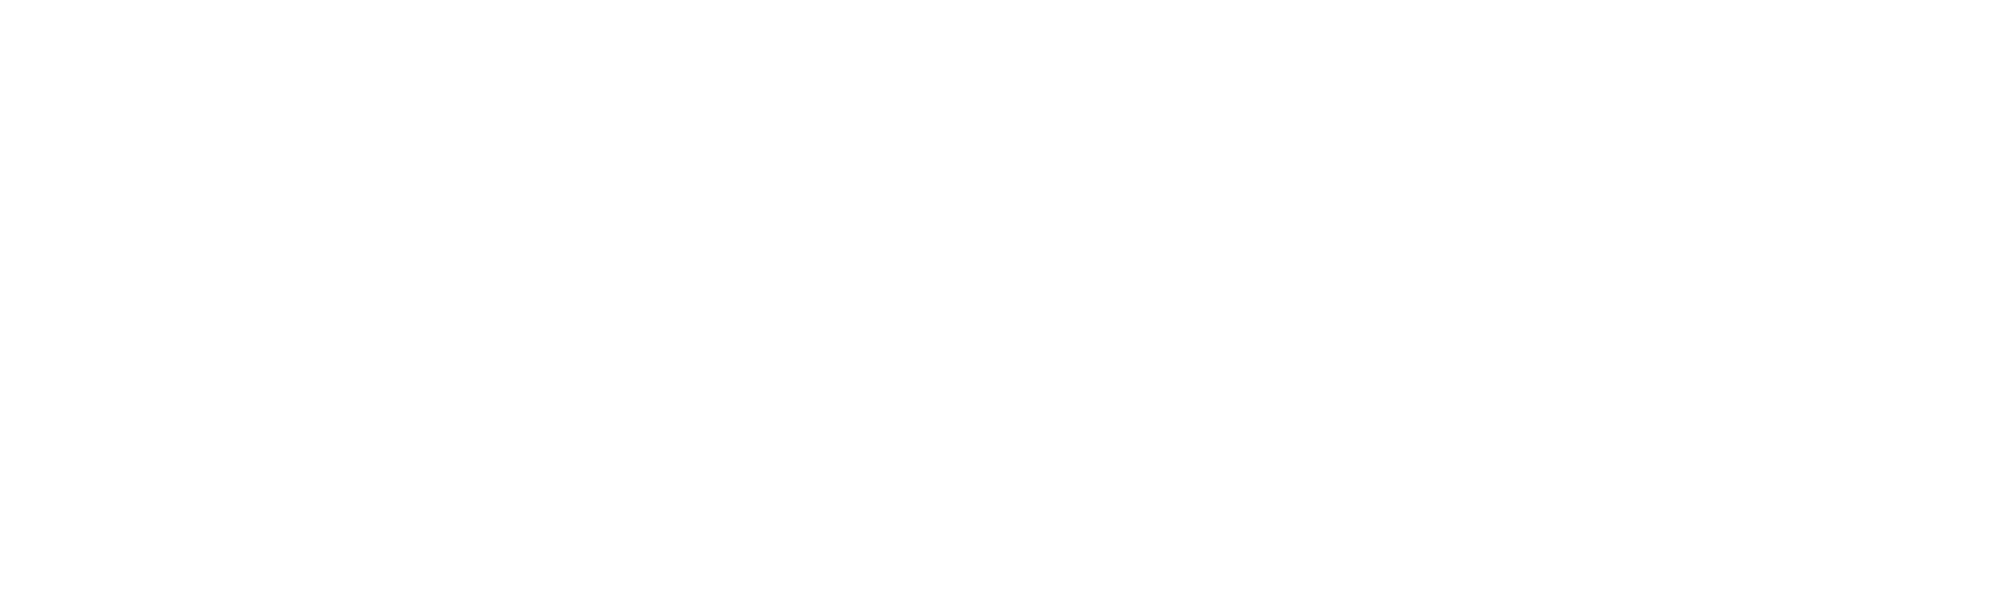 SHSMO Historic Missourians